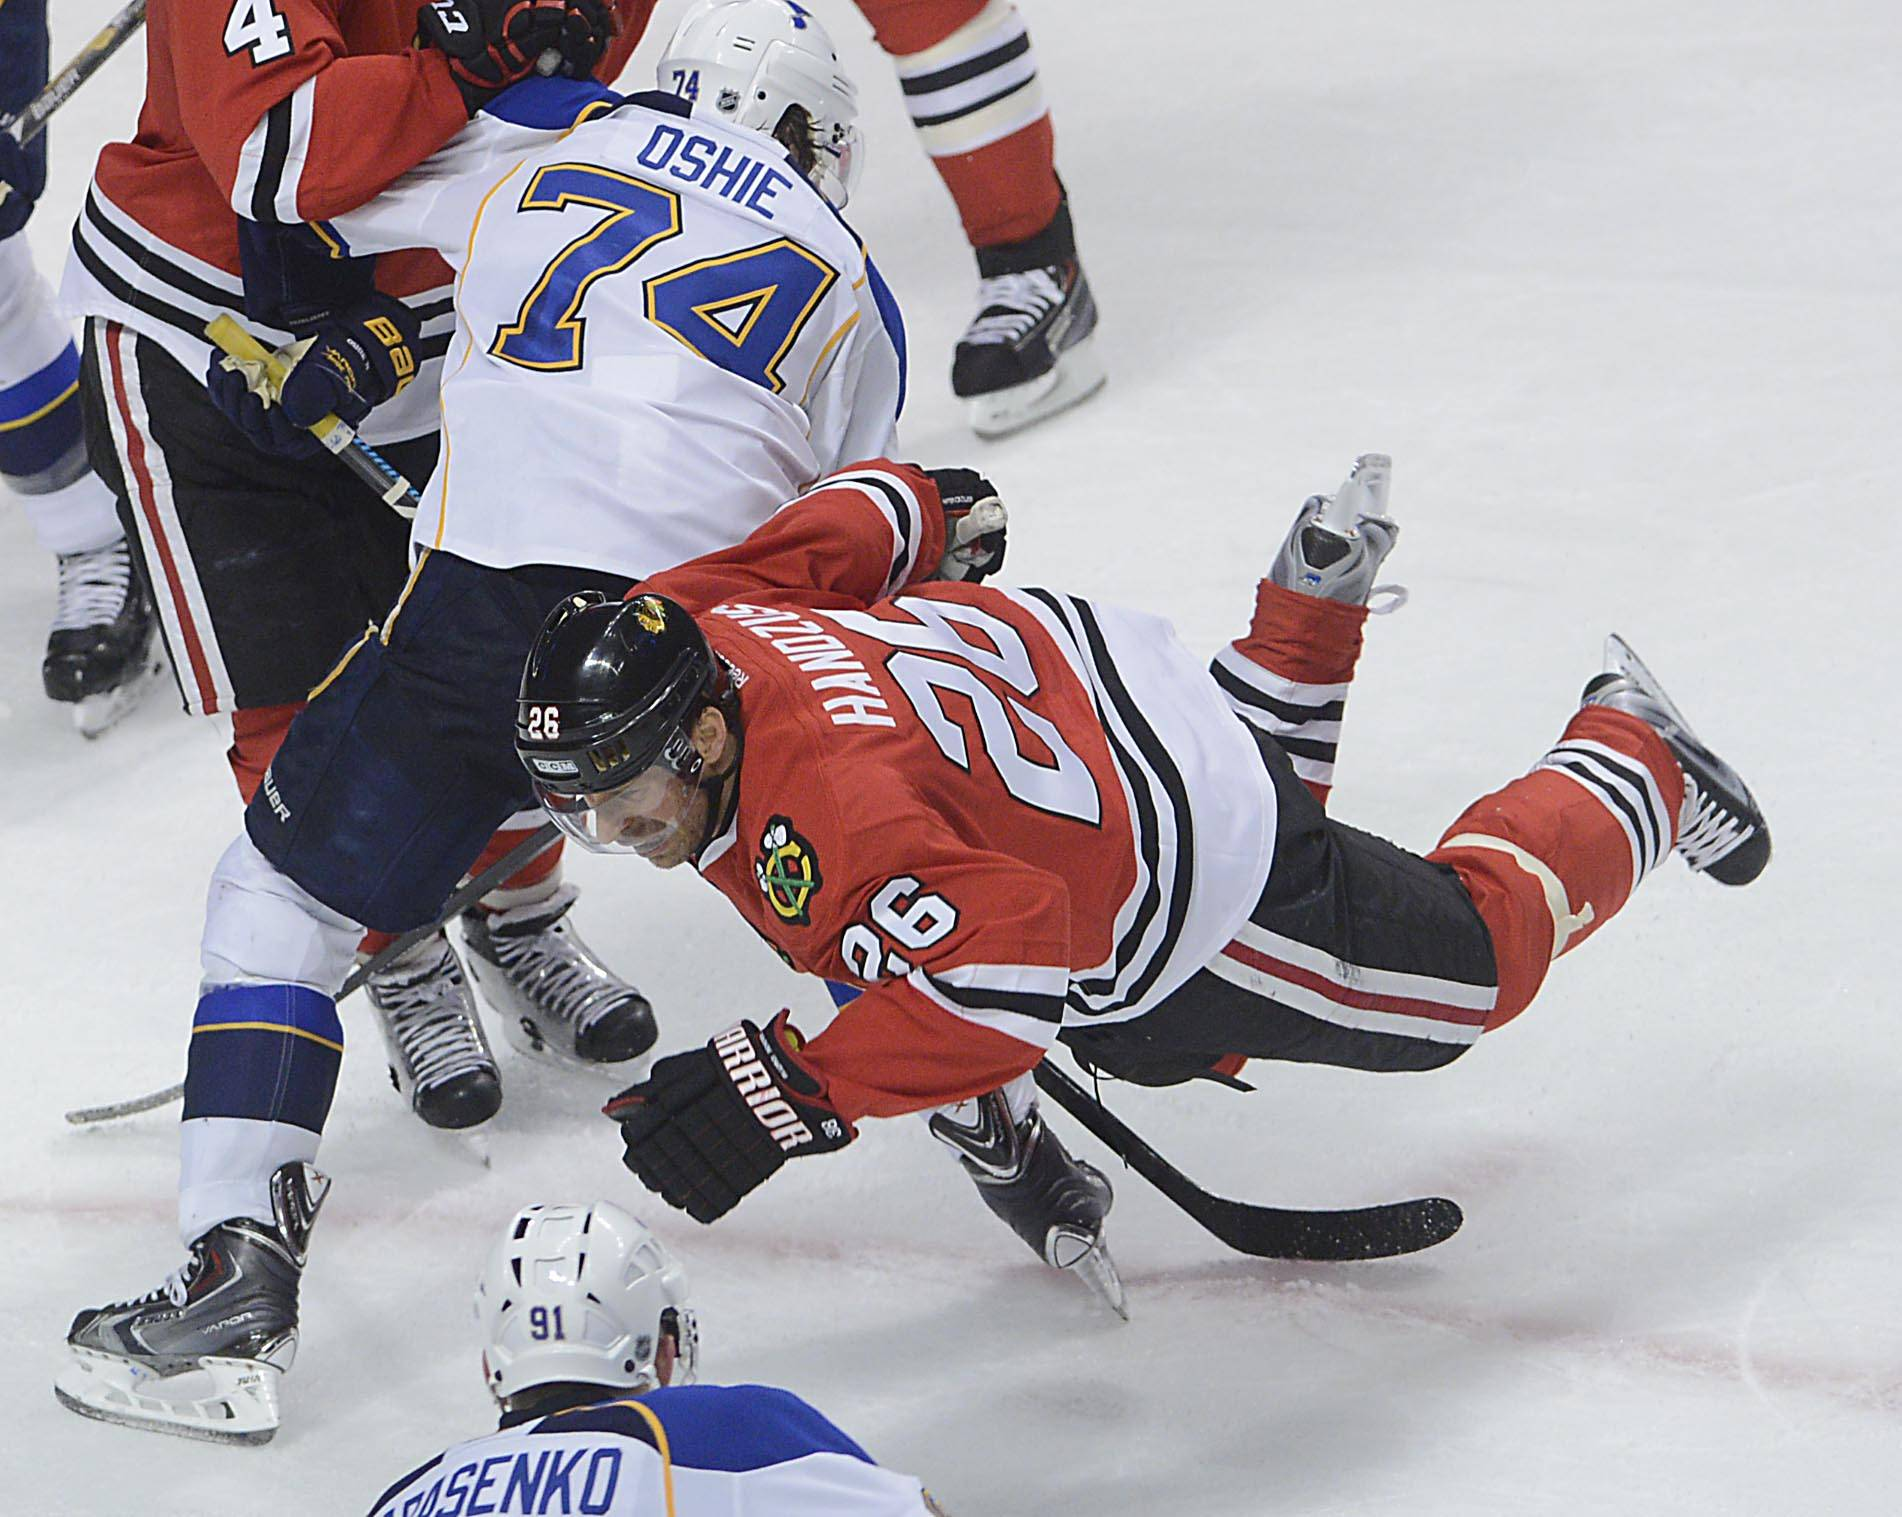 Chicago Blackhawks center Michal Handzus is tripped by St. Louis Blues right wing T.J. Oshie Sunday in Game 6 of the NHL first round playoffs at the United Center in Chicago.